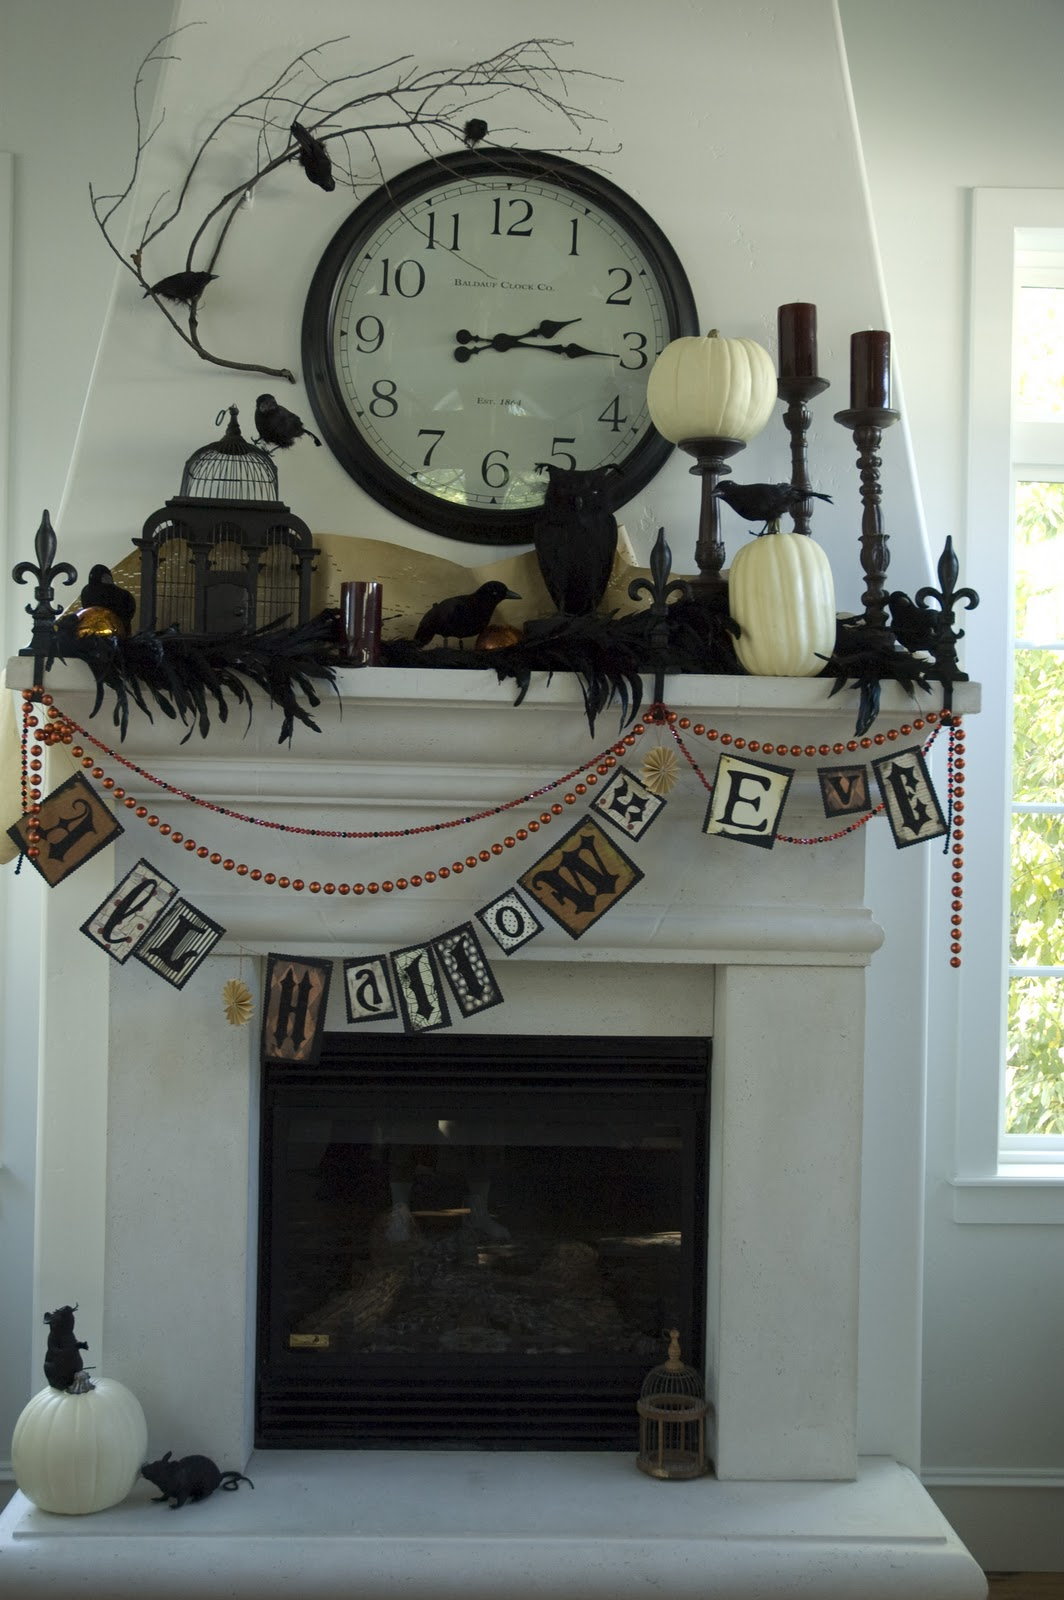 Charmed I M Sure Halloween 2011 Mantel